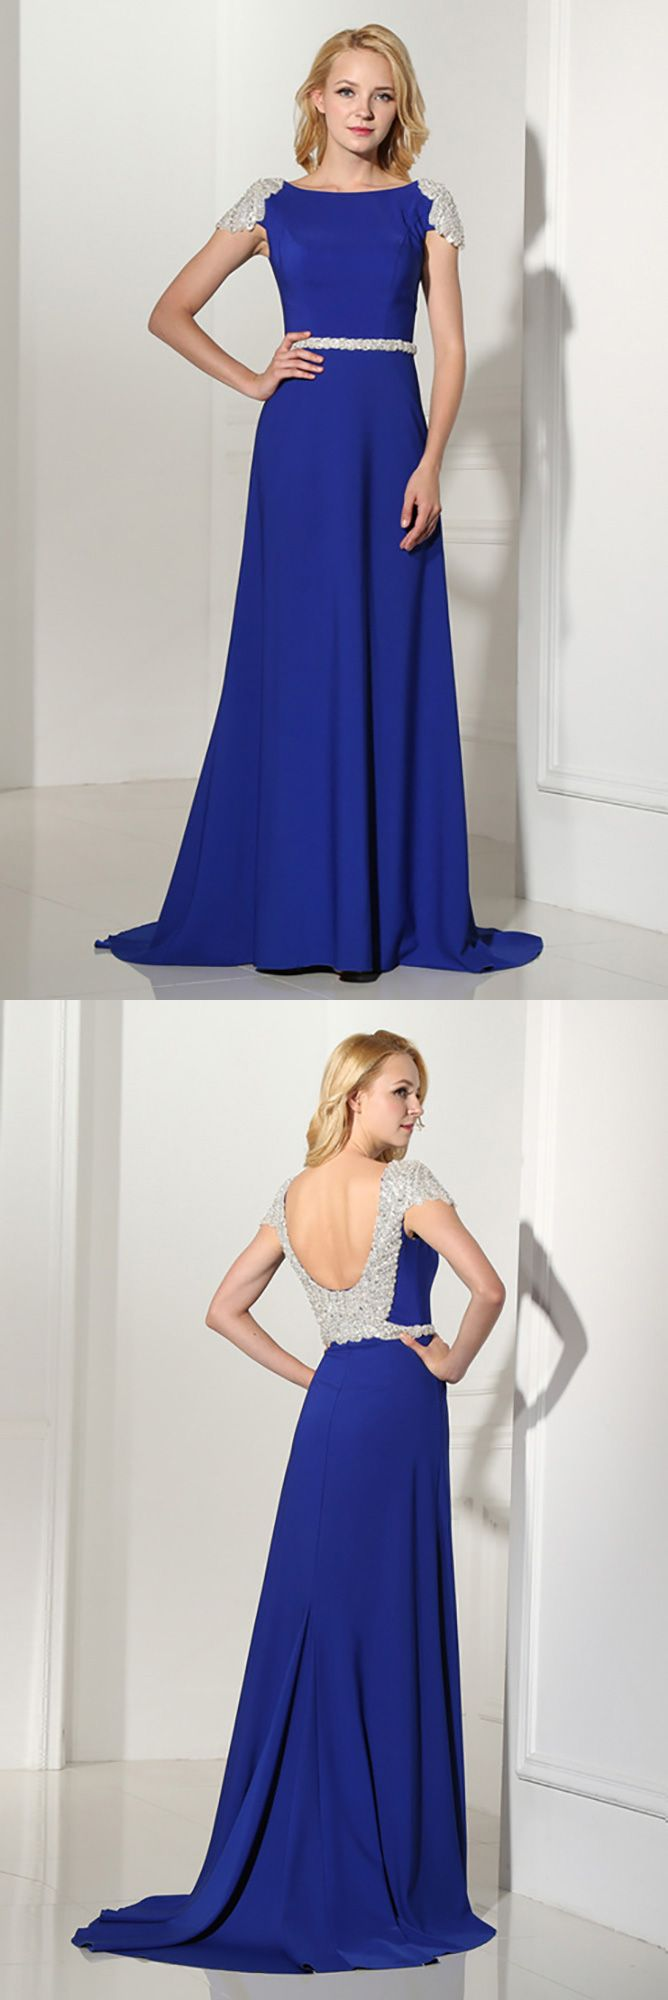 Only $154.99, Evening Dresses Royal Blue Long Petite Formal Dress With Beading Cap Sleeves #H76122 at #GemGrace. View more special Evening Dresses now? GemGrace is a solution for those who want to buy delicate gowns with affordable prices, a solution for those who have unique ideas about their gowns. 2018 new arrivals, shop now to get $10 off!